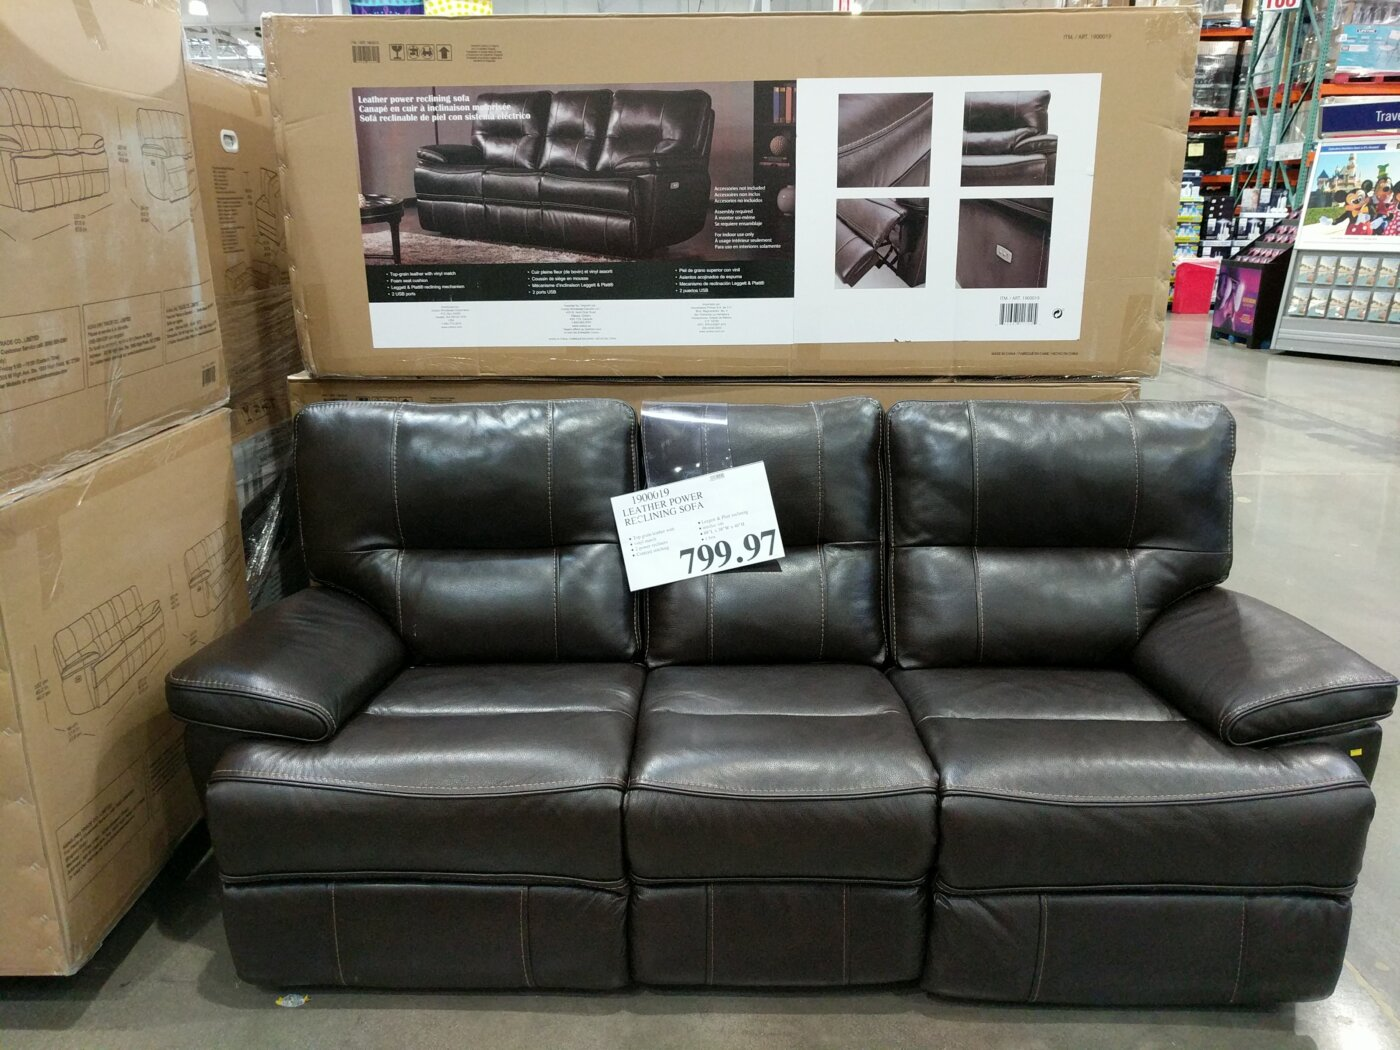 Wondrous Leather Power Reclining Sofa Costco97 Com Gamerscity Chair Design For Home Gamerscityorg